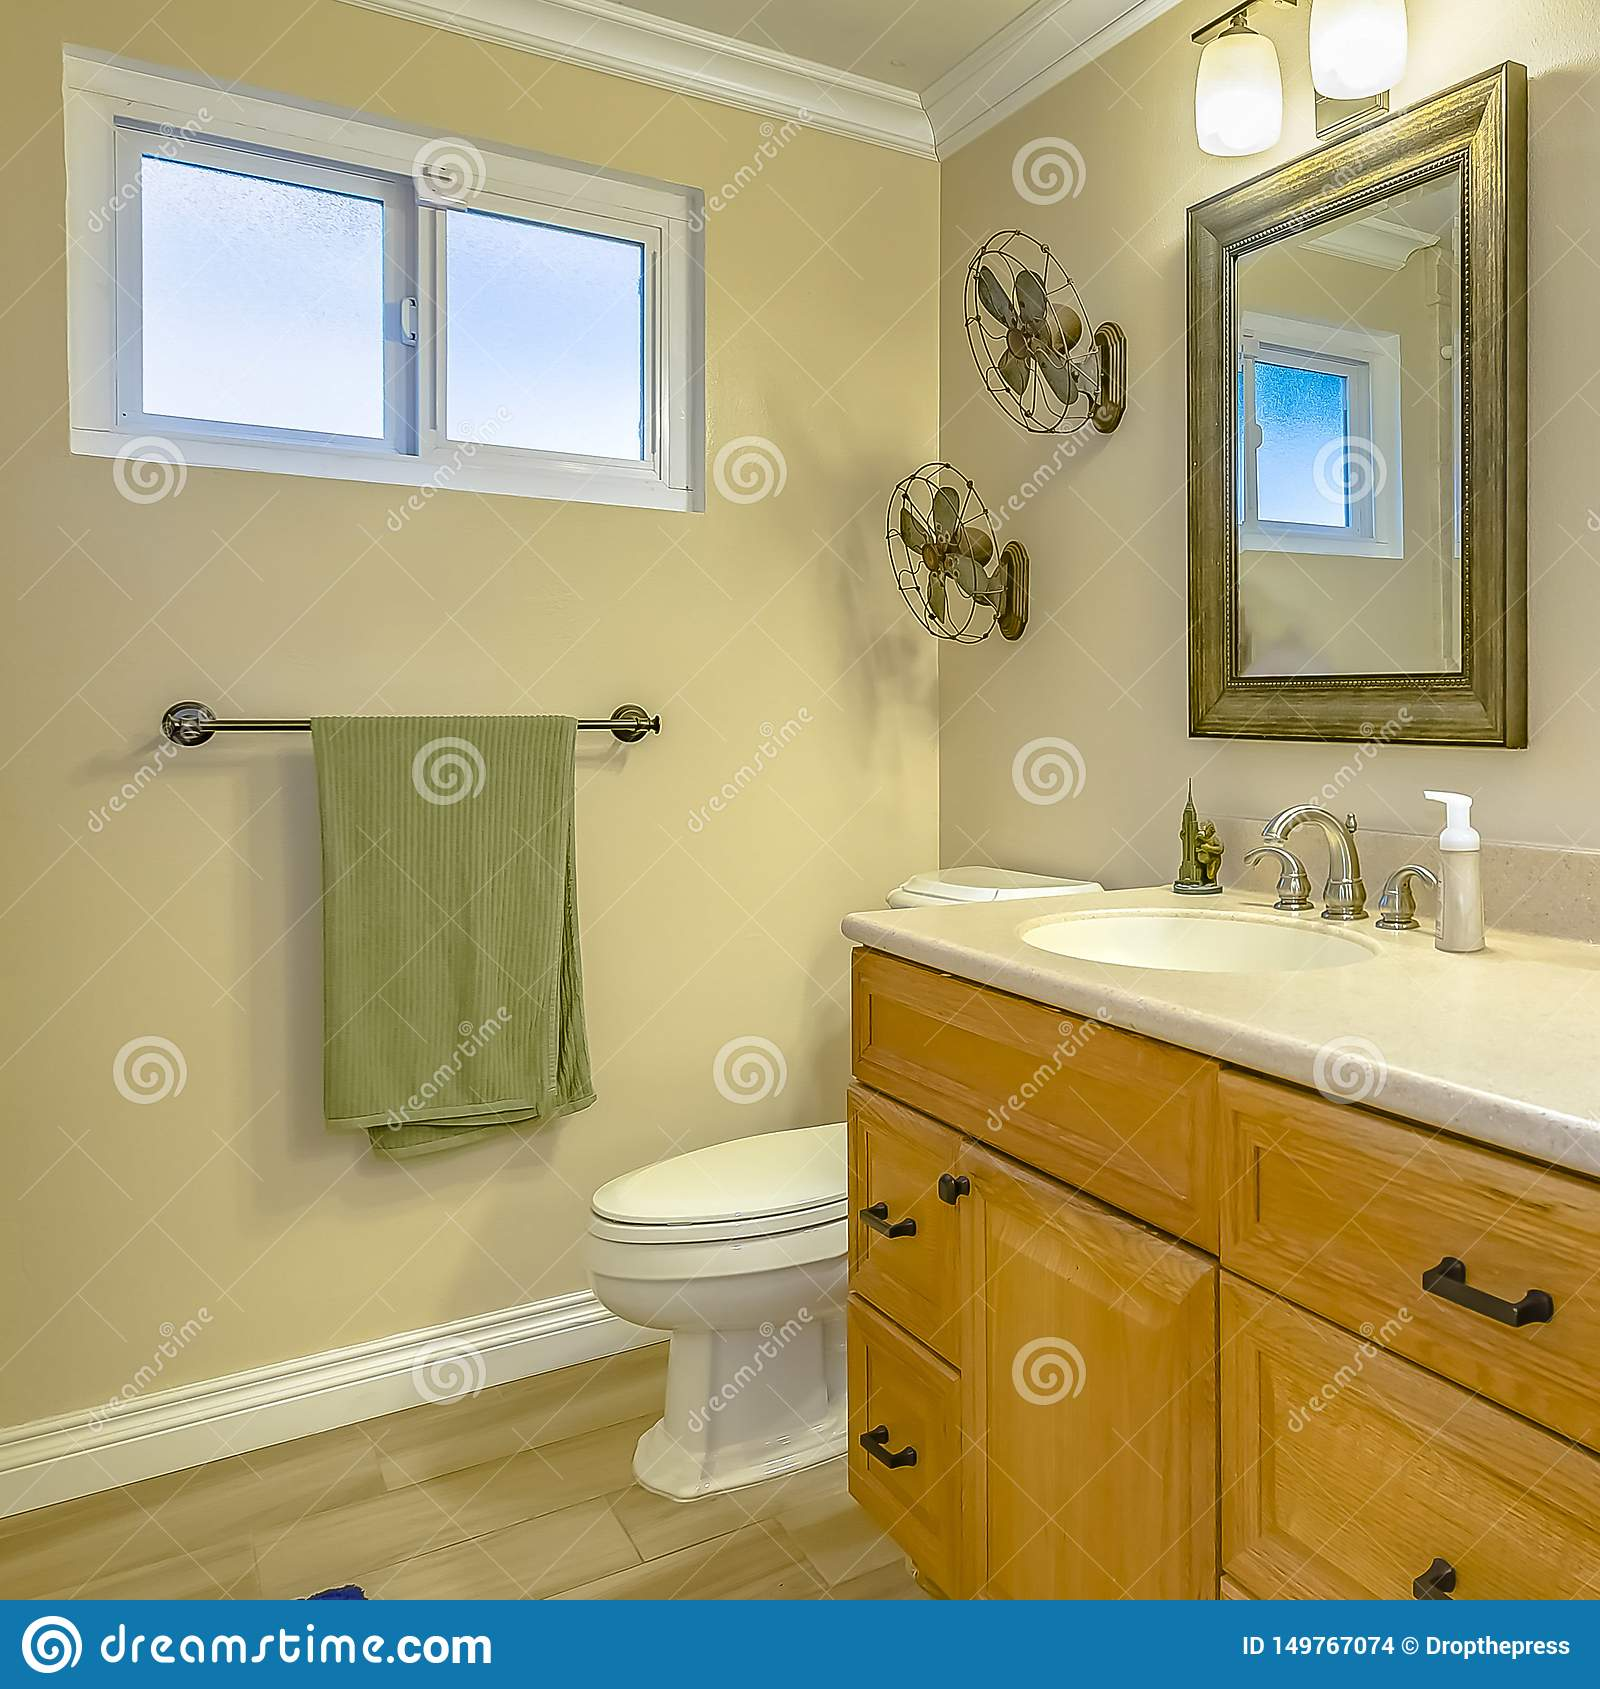 Square Double Vanity With Wooden Cabinets Inside A Bathroom With Small Window Stock Photo Image Of Fixture Design 149767074